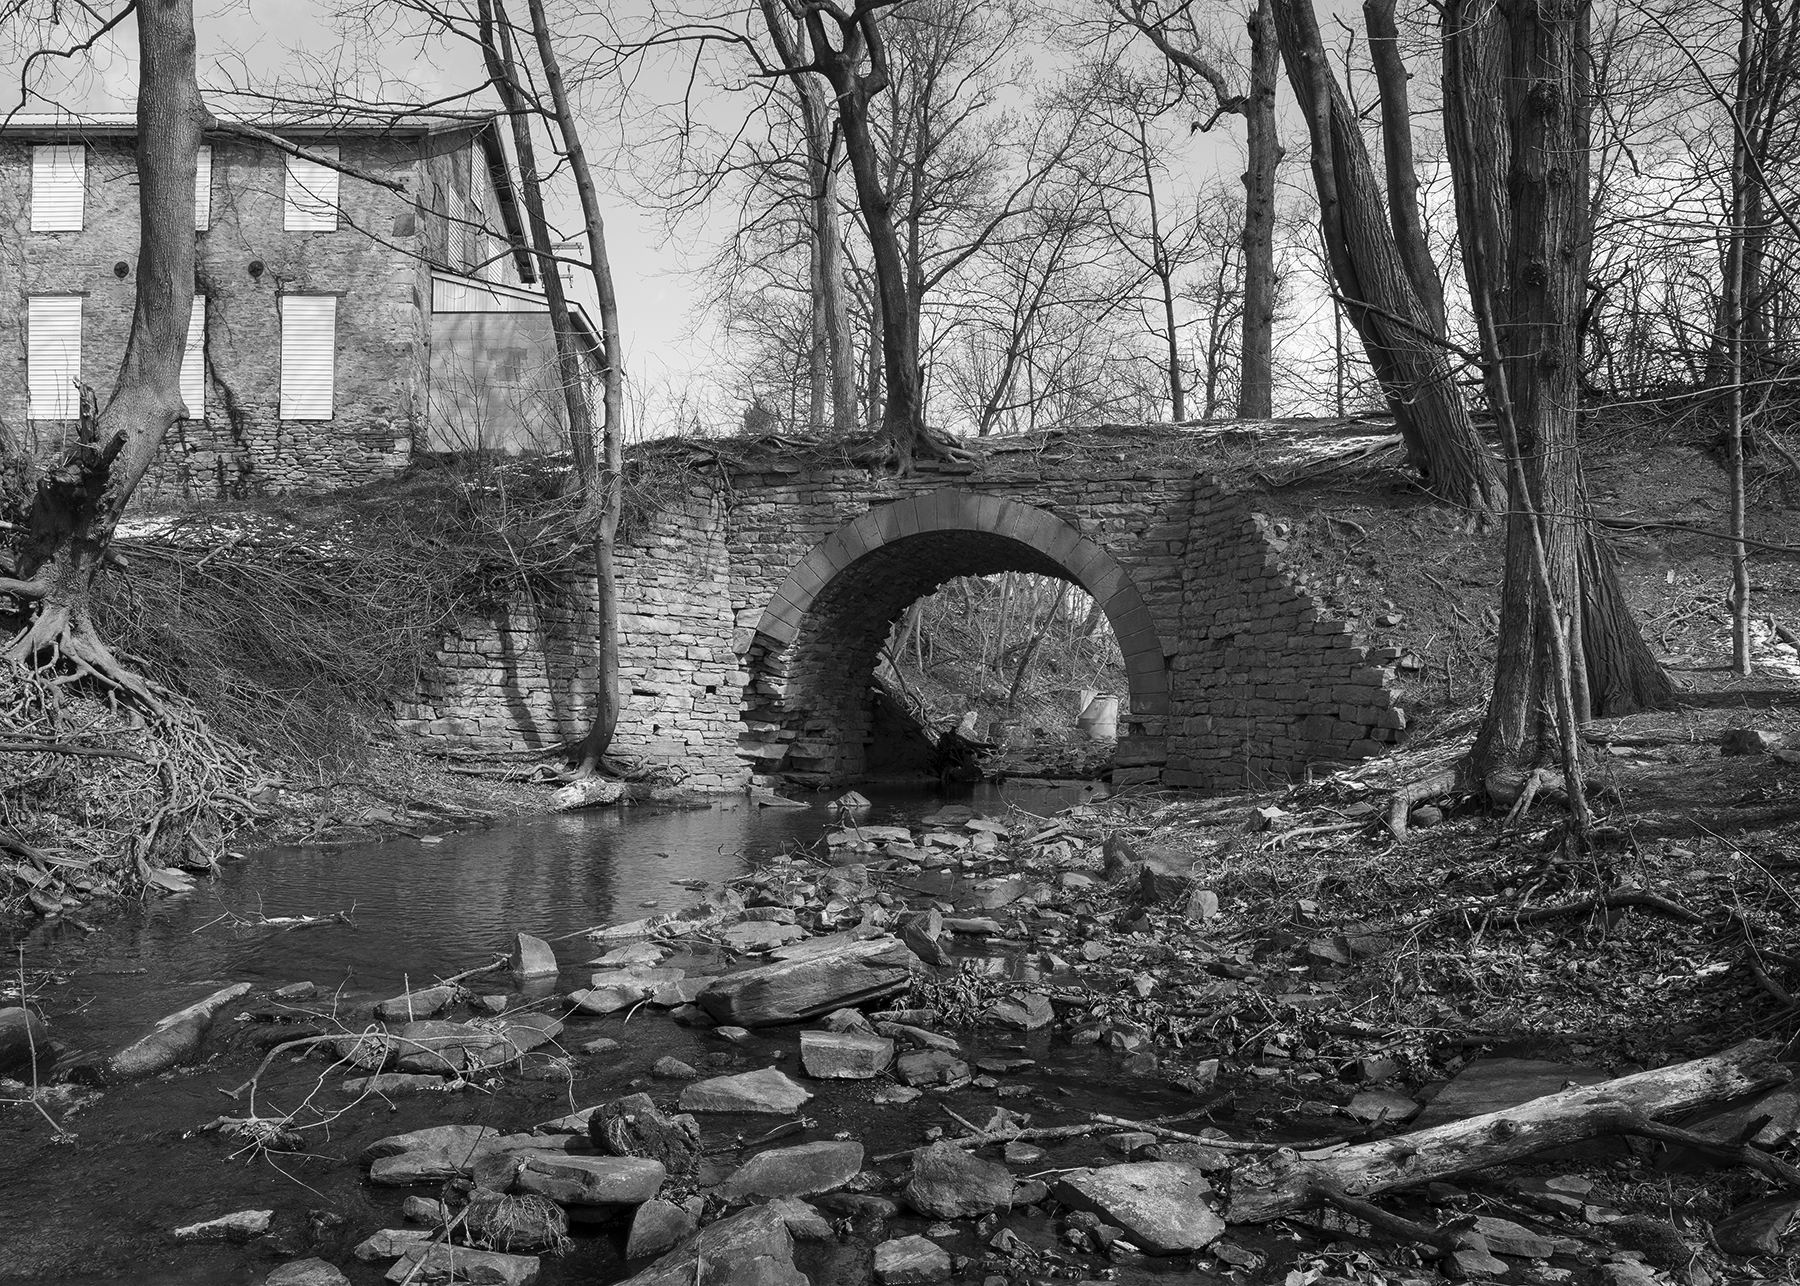 The remains of the original Philadelphia & Columbia stone arch bridge crossing Pine Creek still survive despite being part of the right of way that was abandoned during the 1890's line improvements between Gap and Atglen, Pennsylvania. The structures at the left are part of what was Christiana Machine, one of the first industries in Sadsbury Township to take advantage of the railroad's expanded market reach.